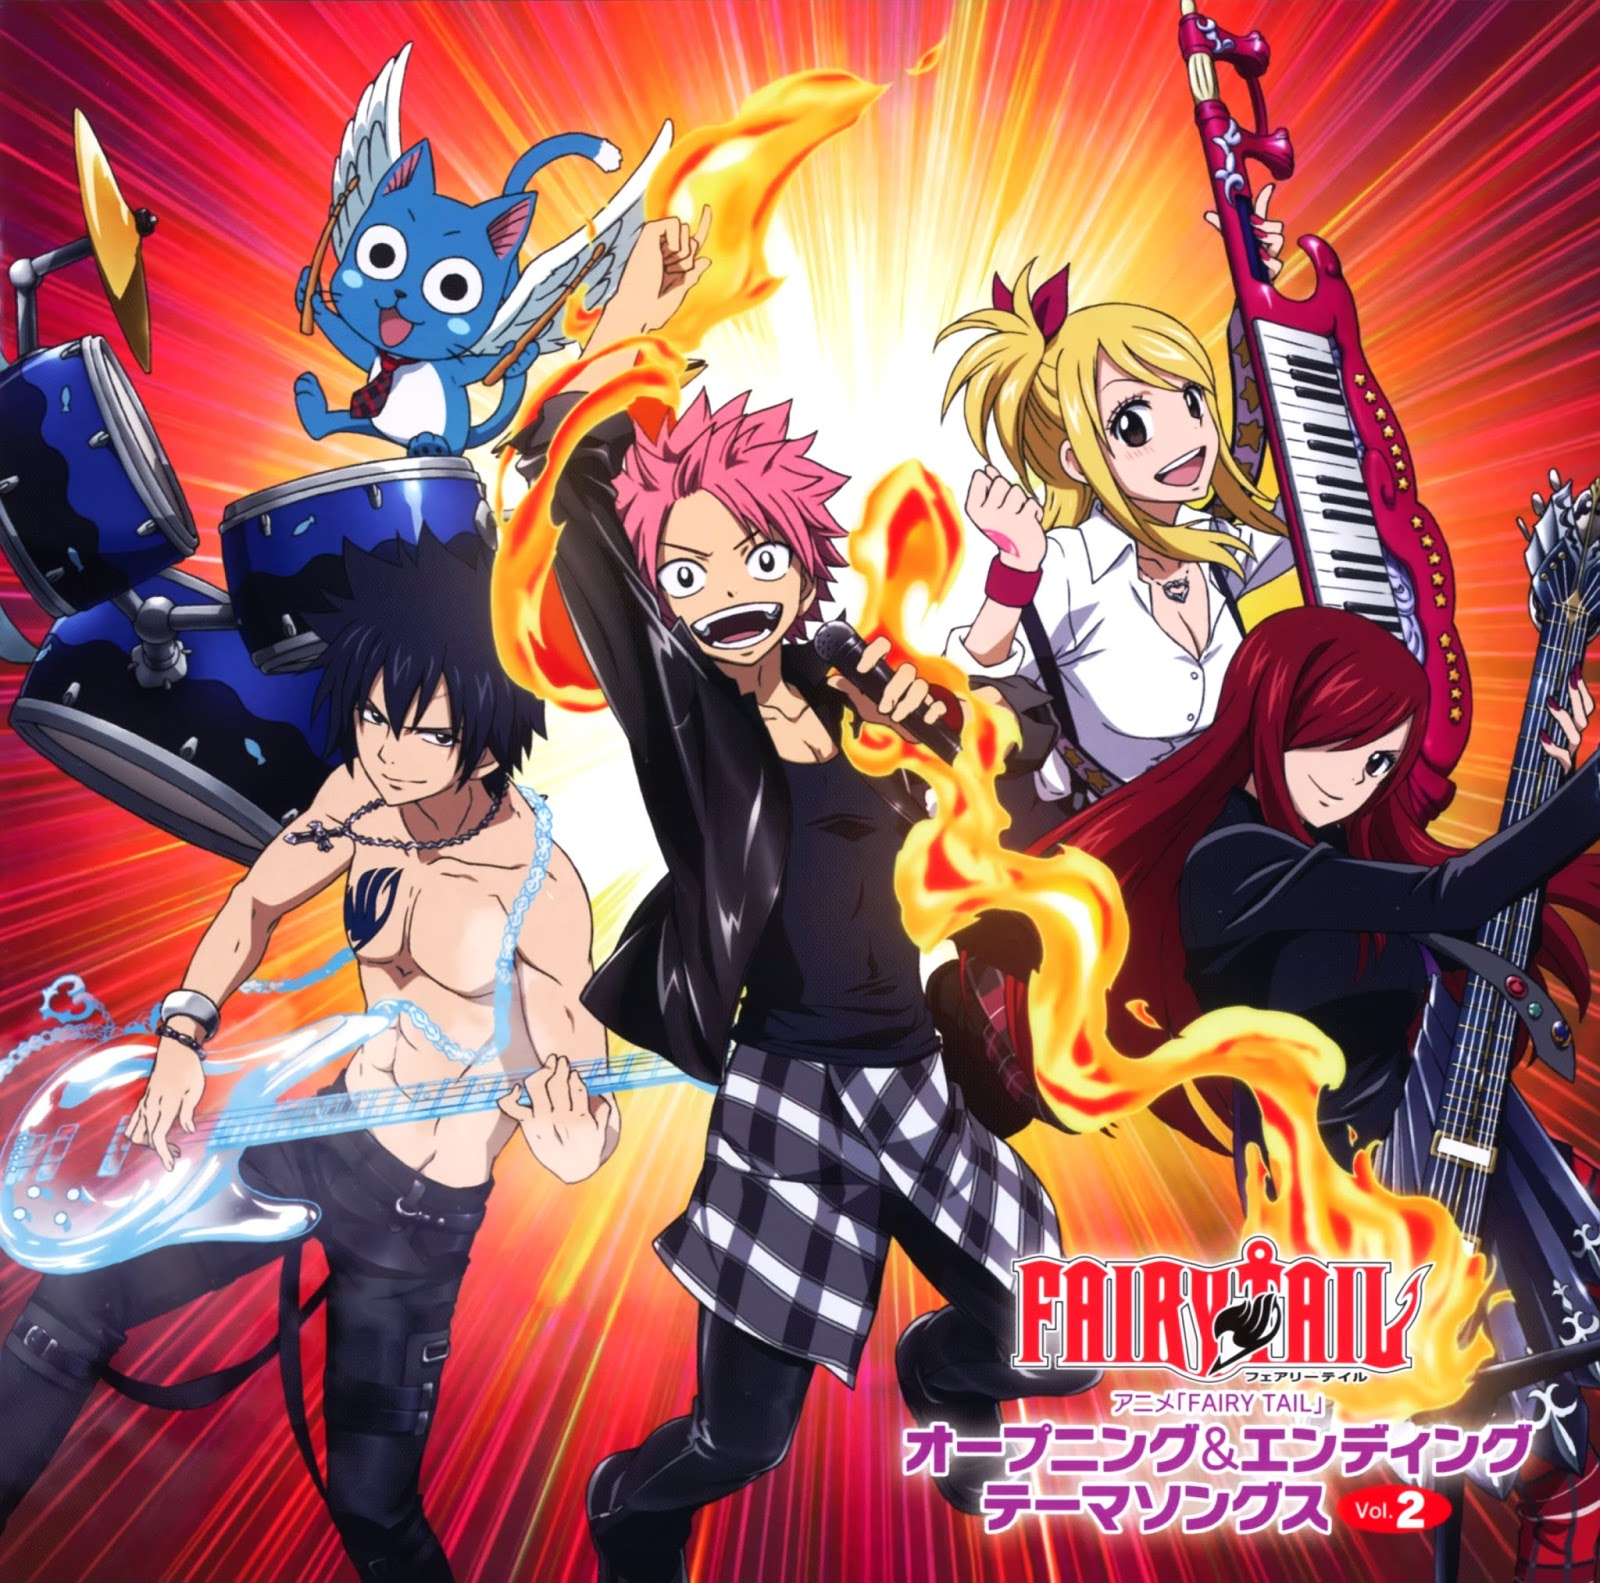 Fairy Tail (2014) Episode 176-191 Subtitle Indonesia